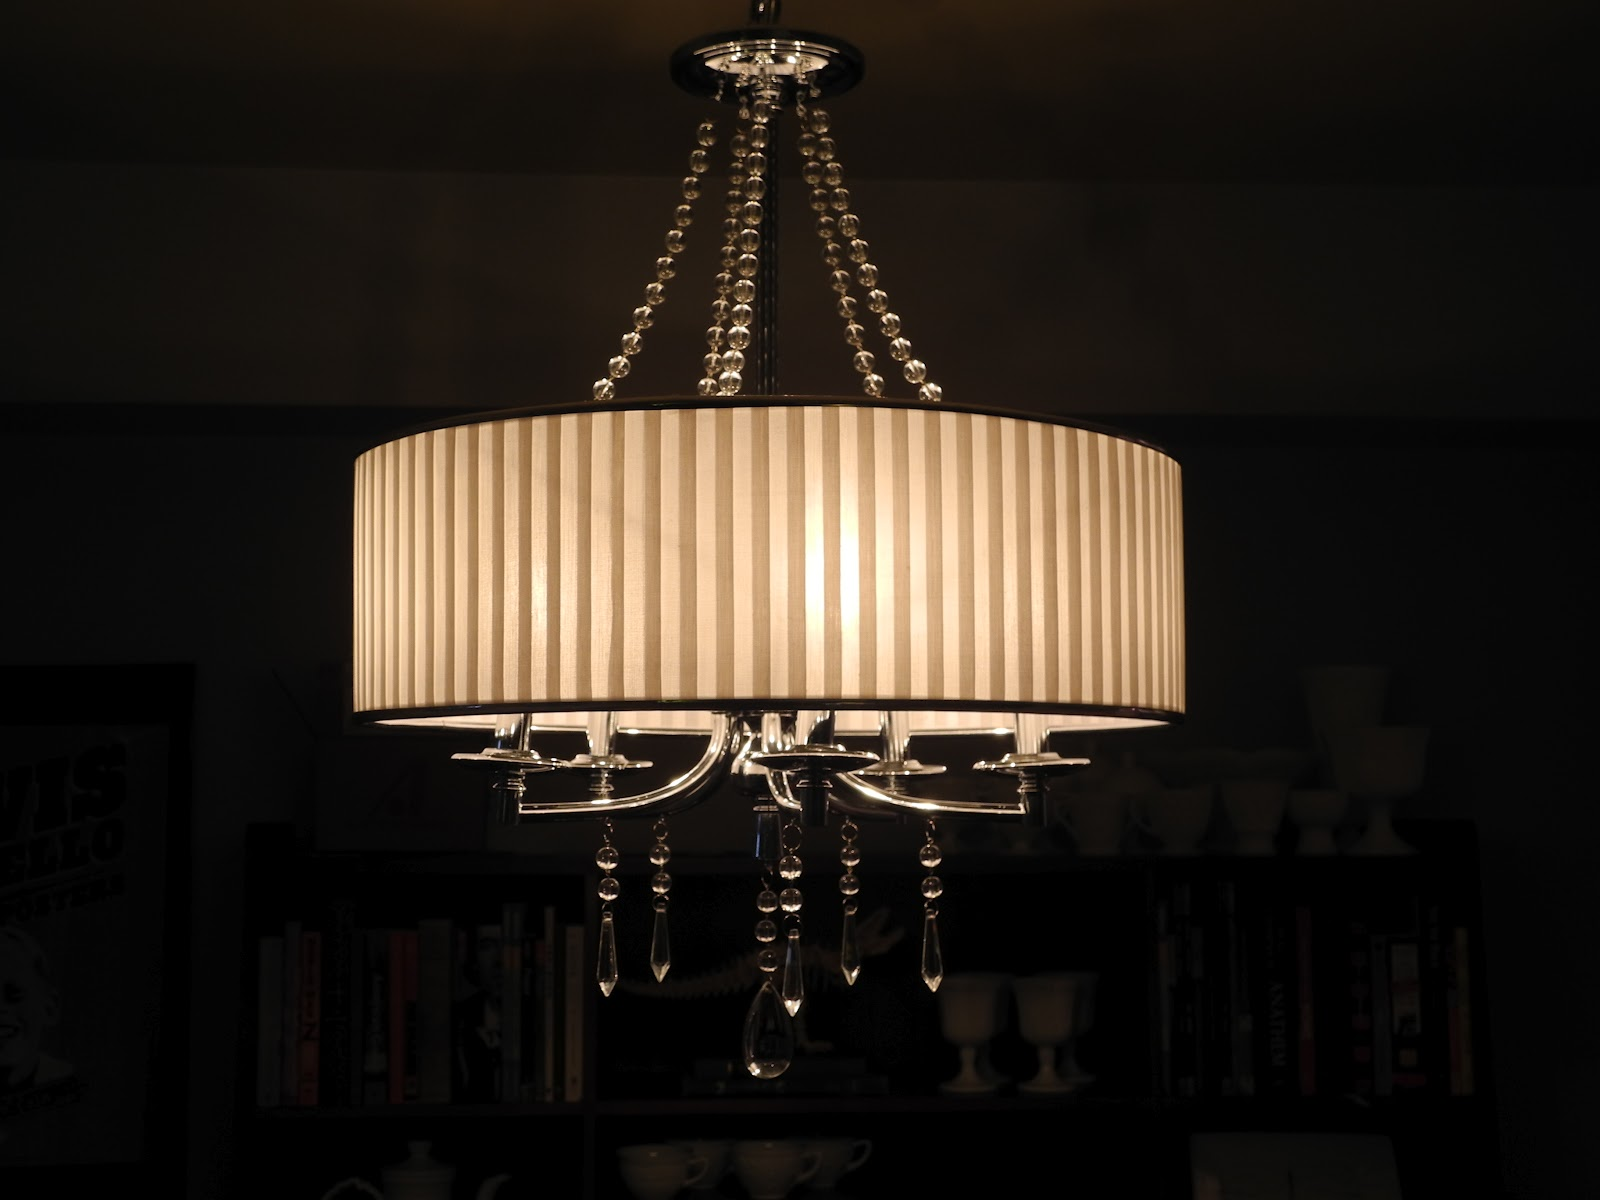 Librarian tells all echelon by golden lighting the perfect chandelier for a mid century - Dining room crystal chandelier lighting ...